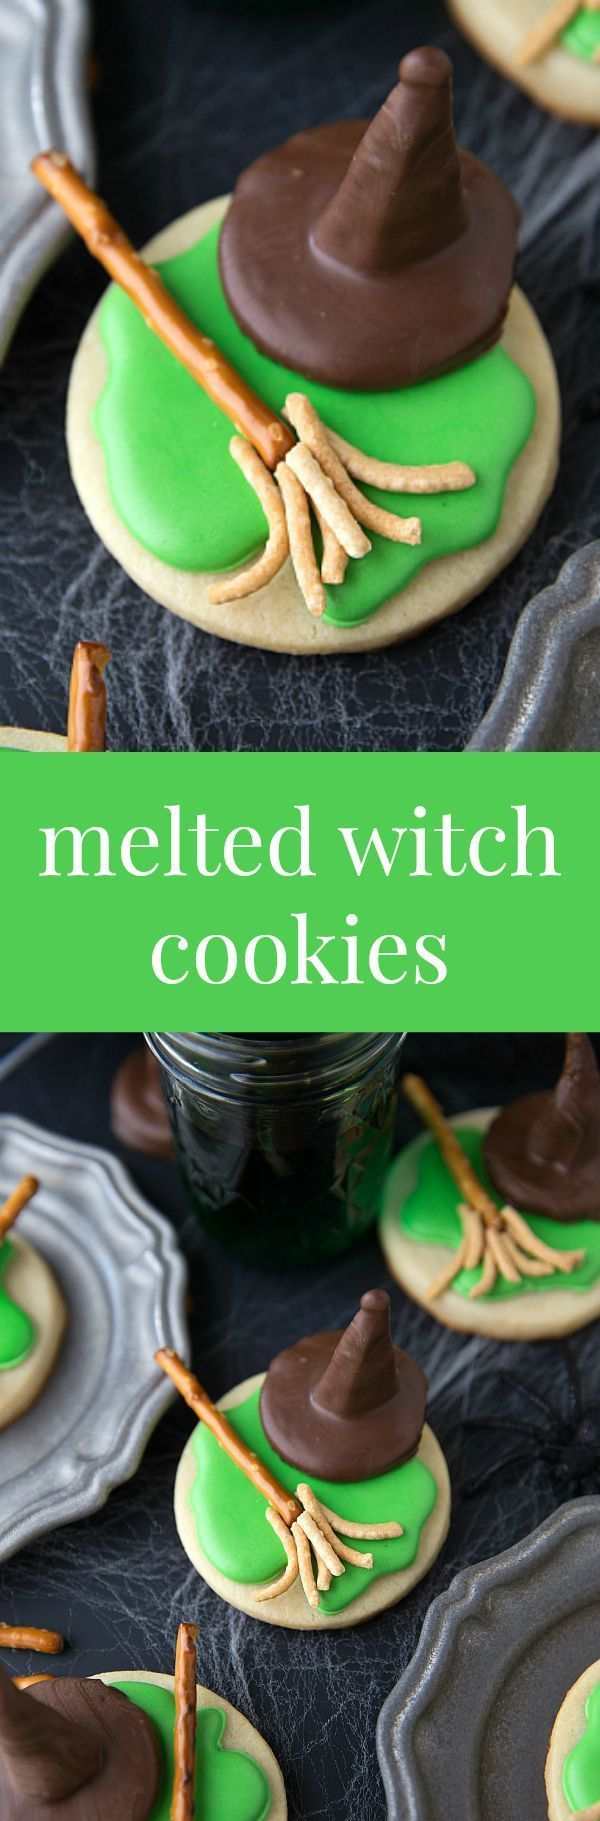 Cute Halloween Treat -- Melted Witch Cookies (Cute Halloween Art)